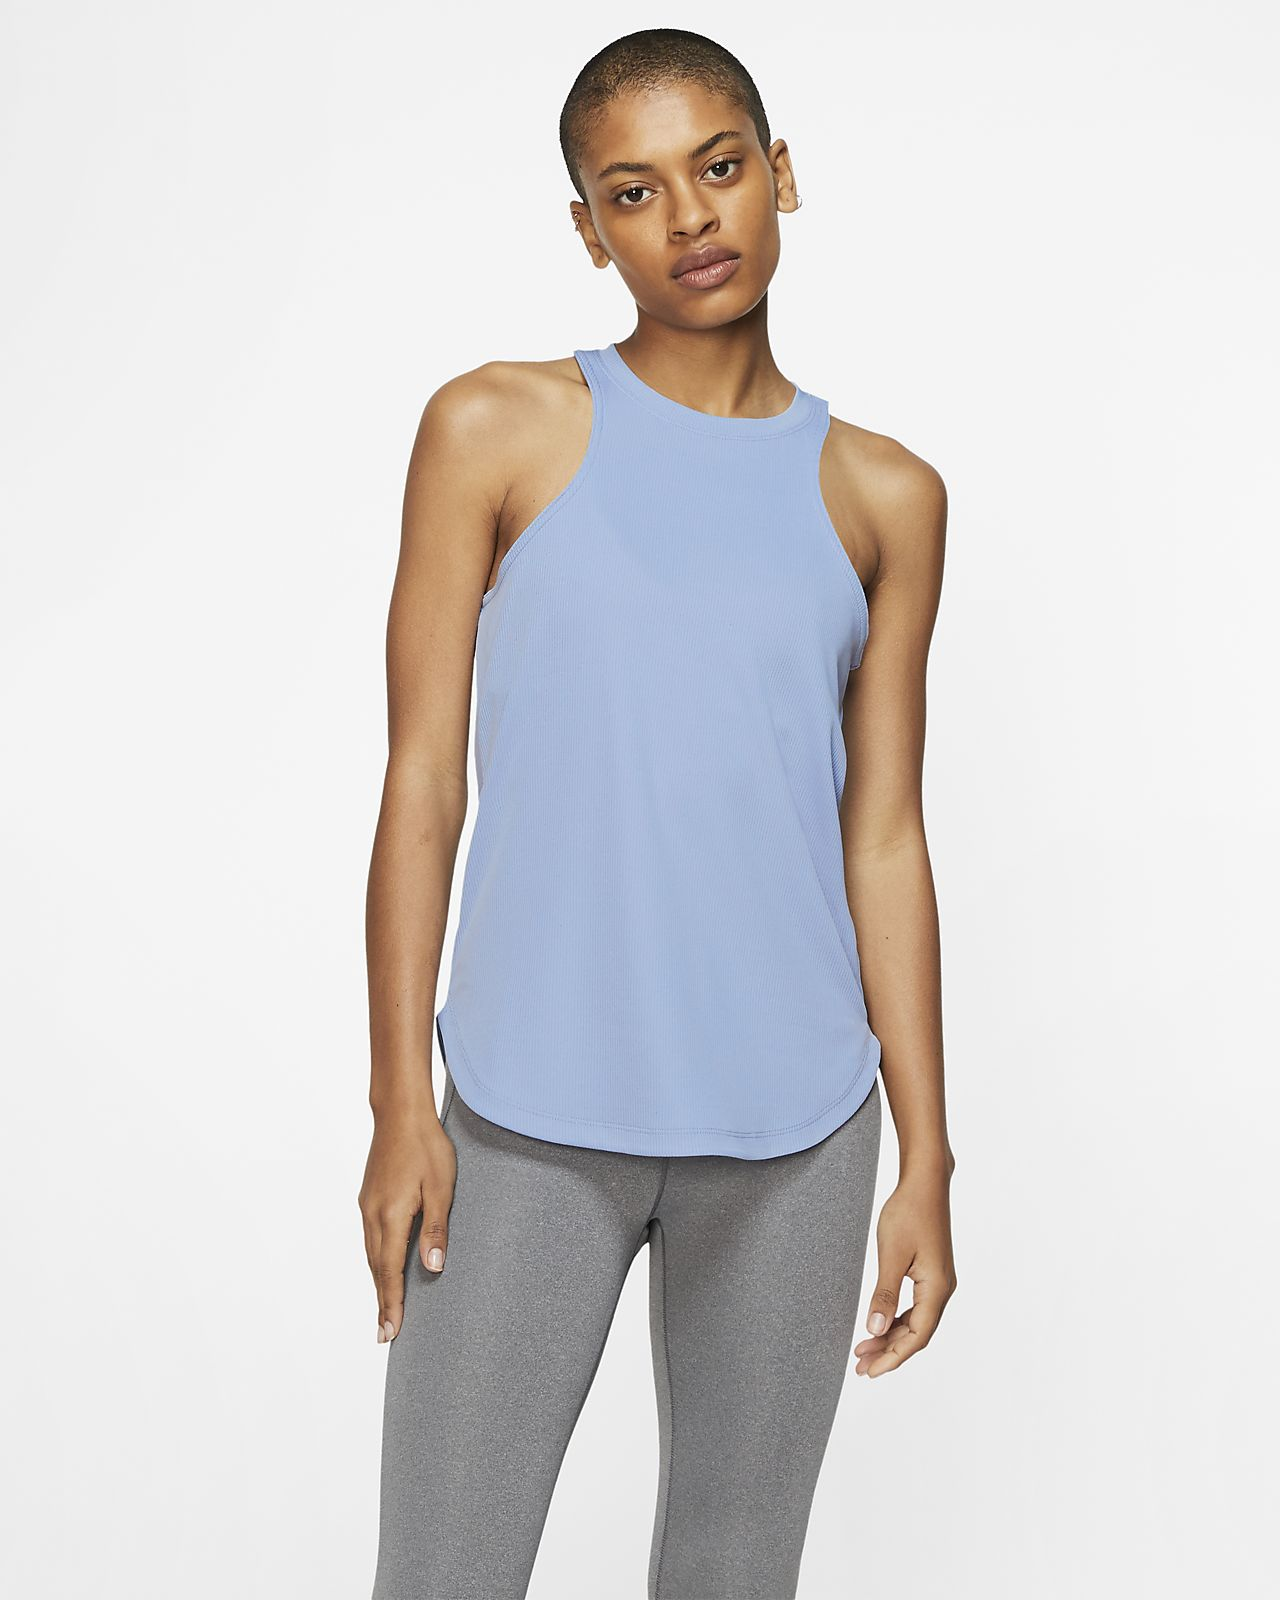 Nike Dri-FIT Women's Yoga Training Tank